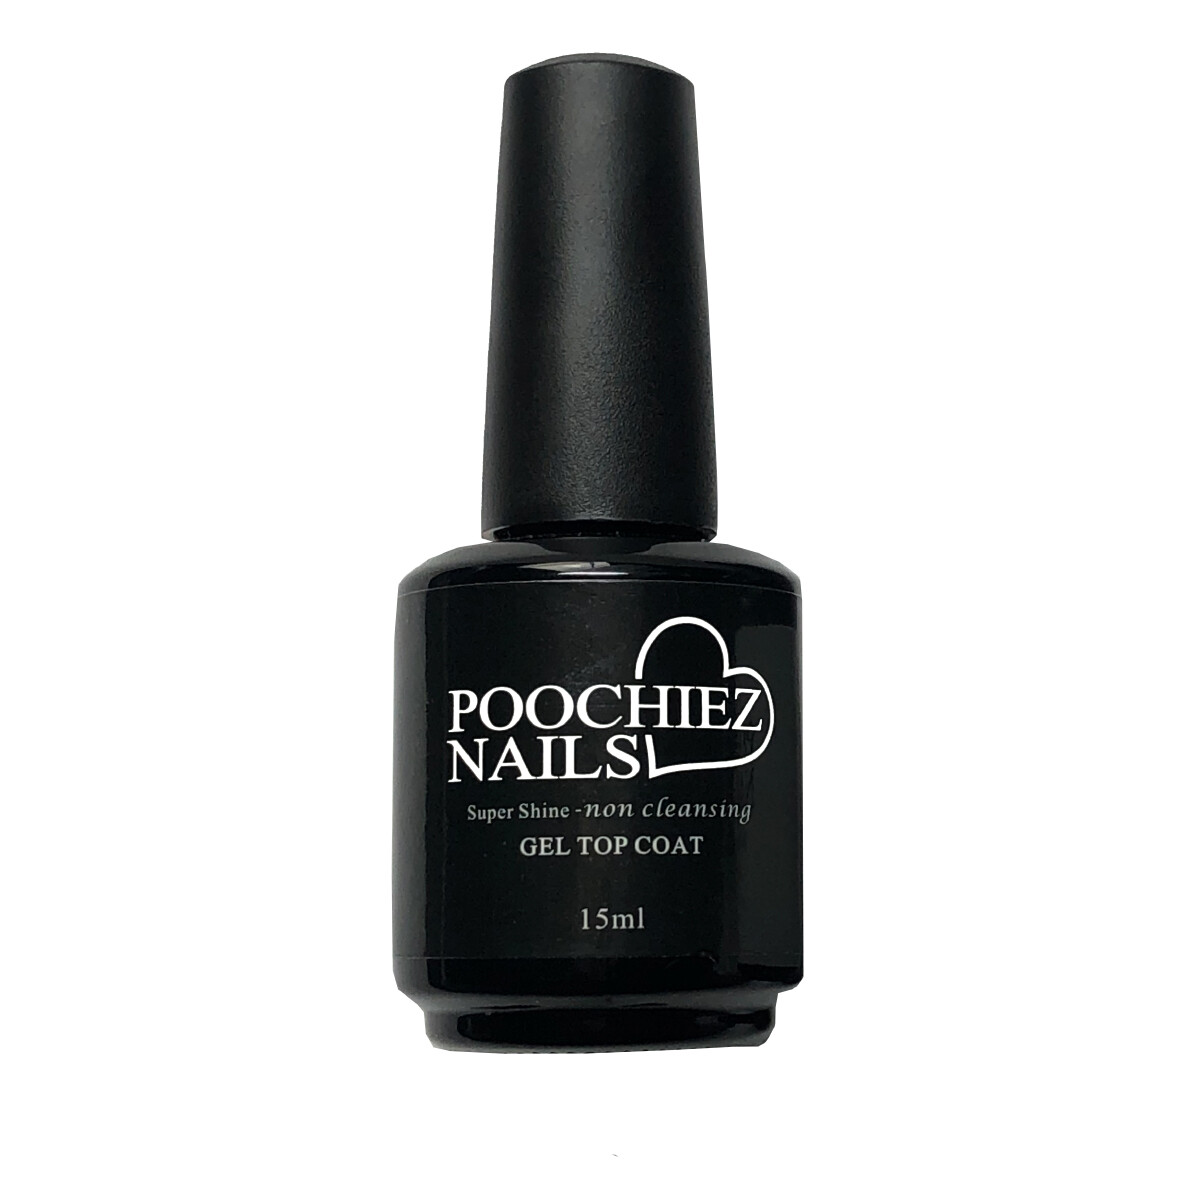 ITEM #30 POOCHIEZ NAILS SUPER SHINE UV/LED TOP COAT